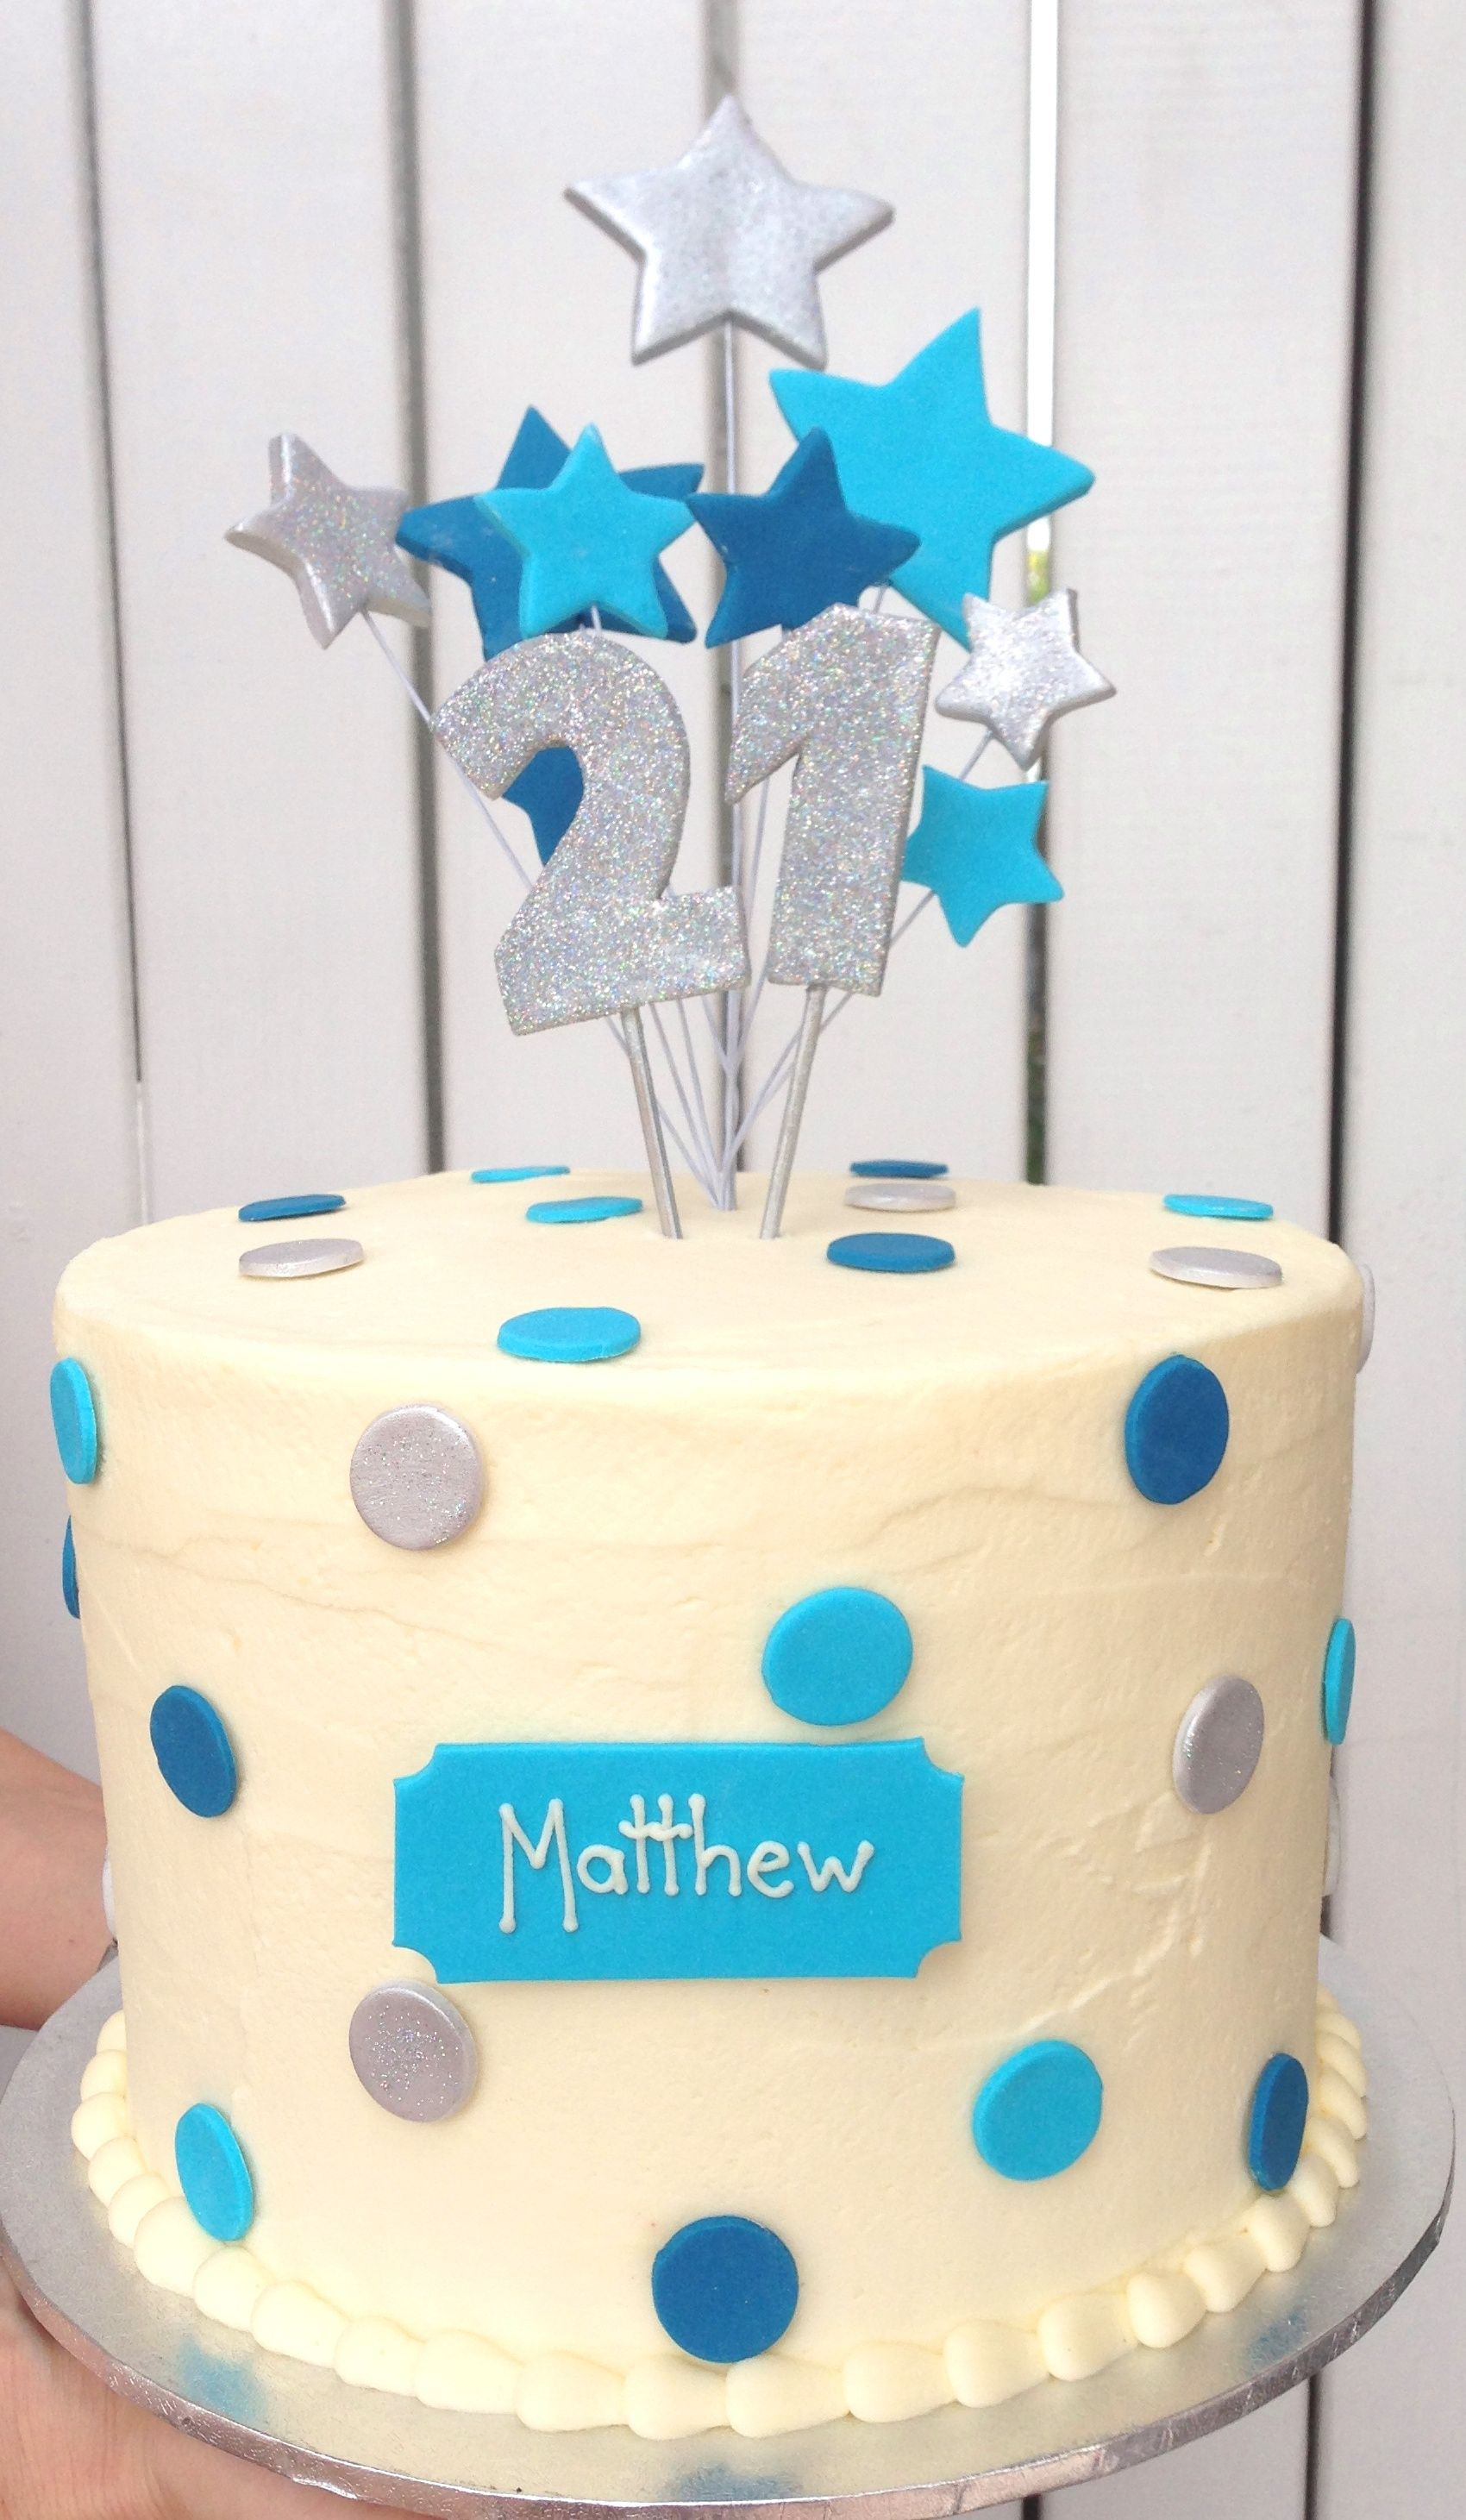 Male 21st Birthday Cake Birthday Cakes How To Make In